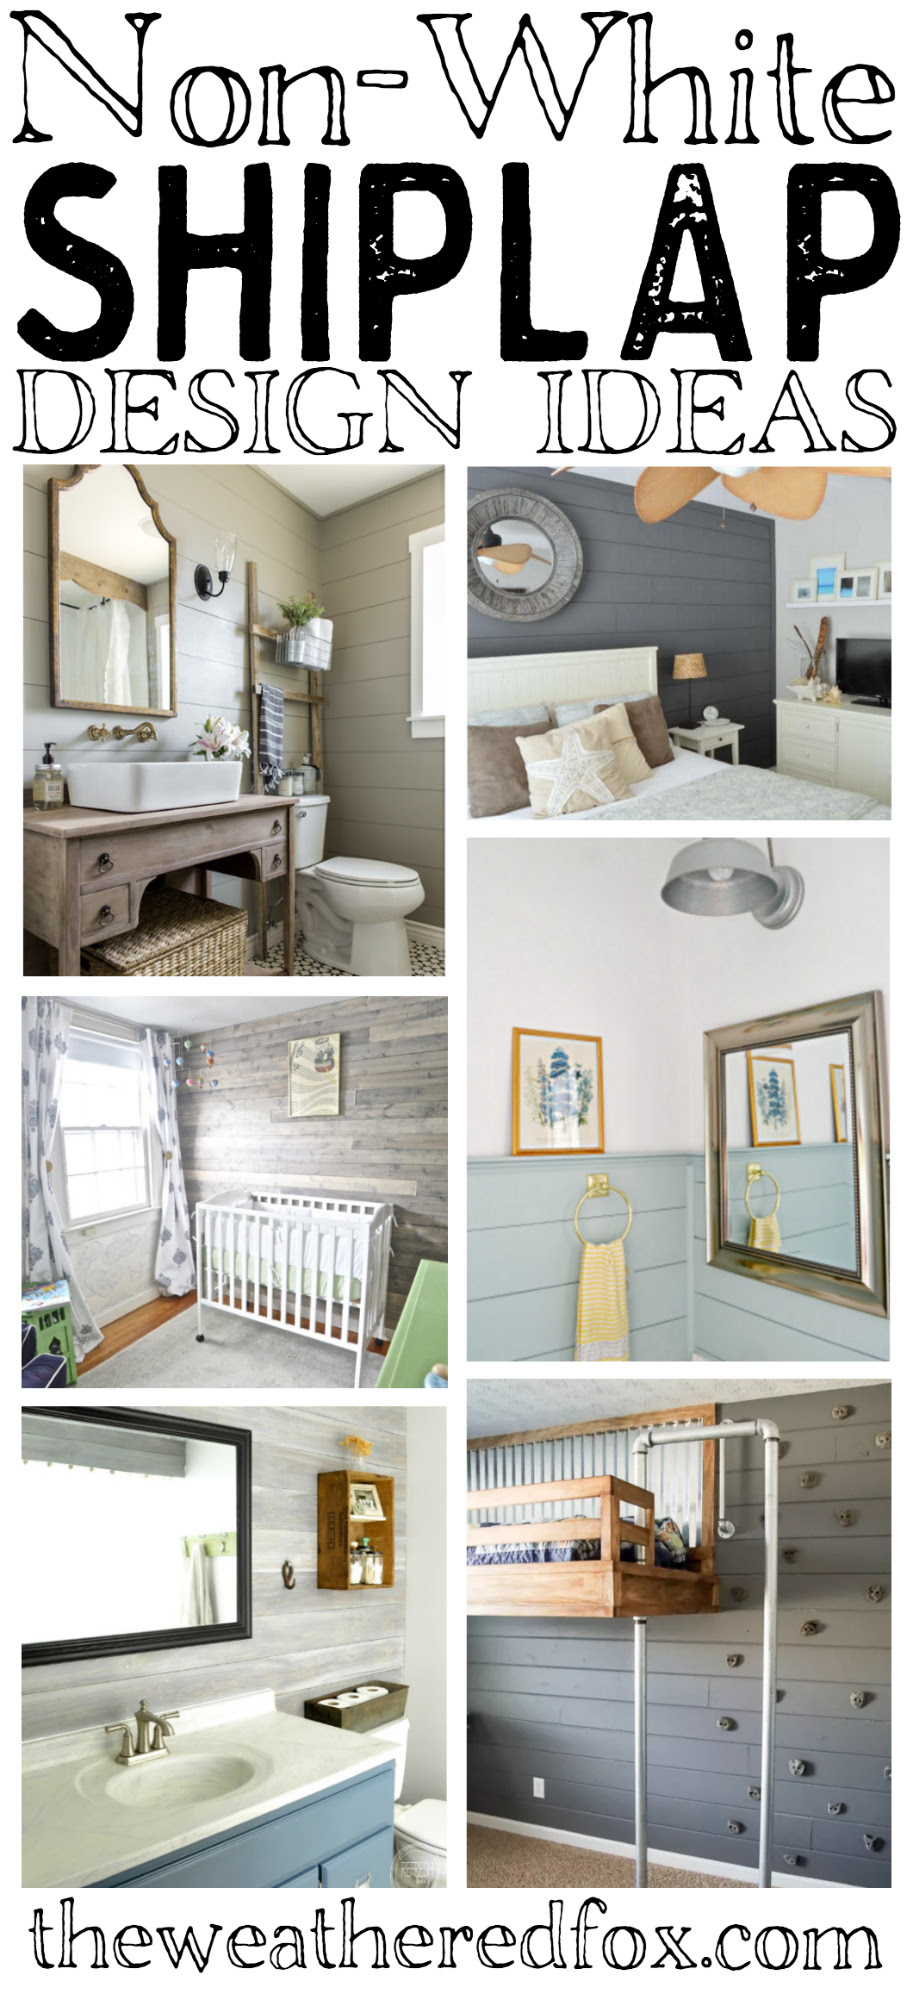 Awesome Non White Shiplap Decorating Ideas That Work With Any Style